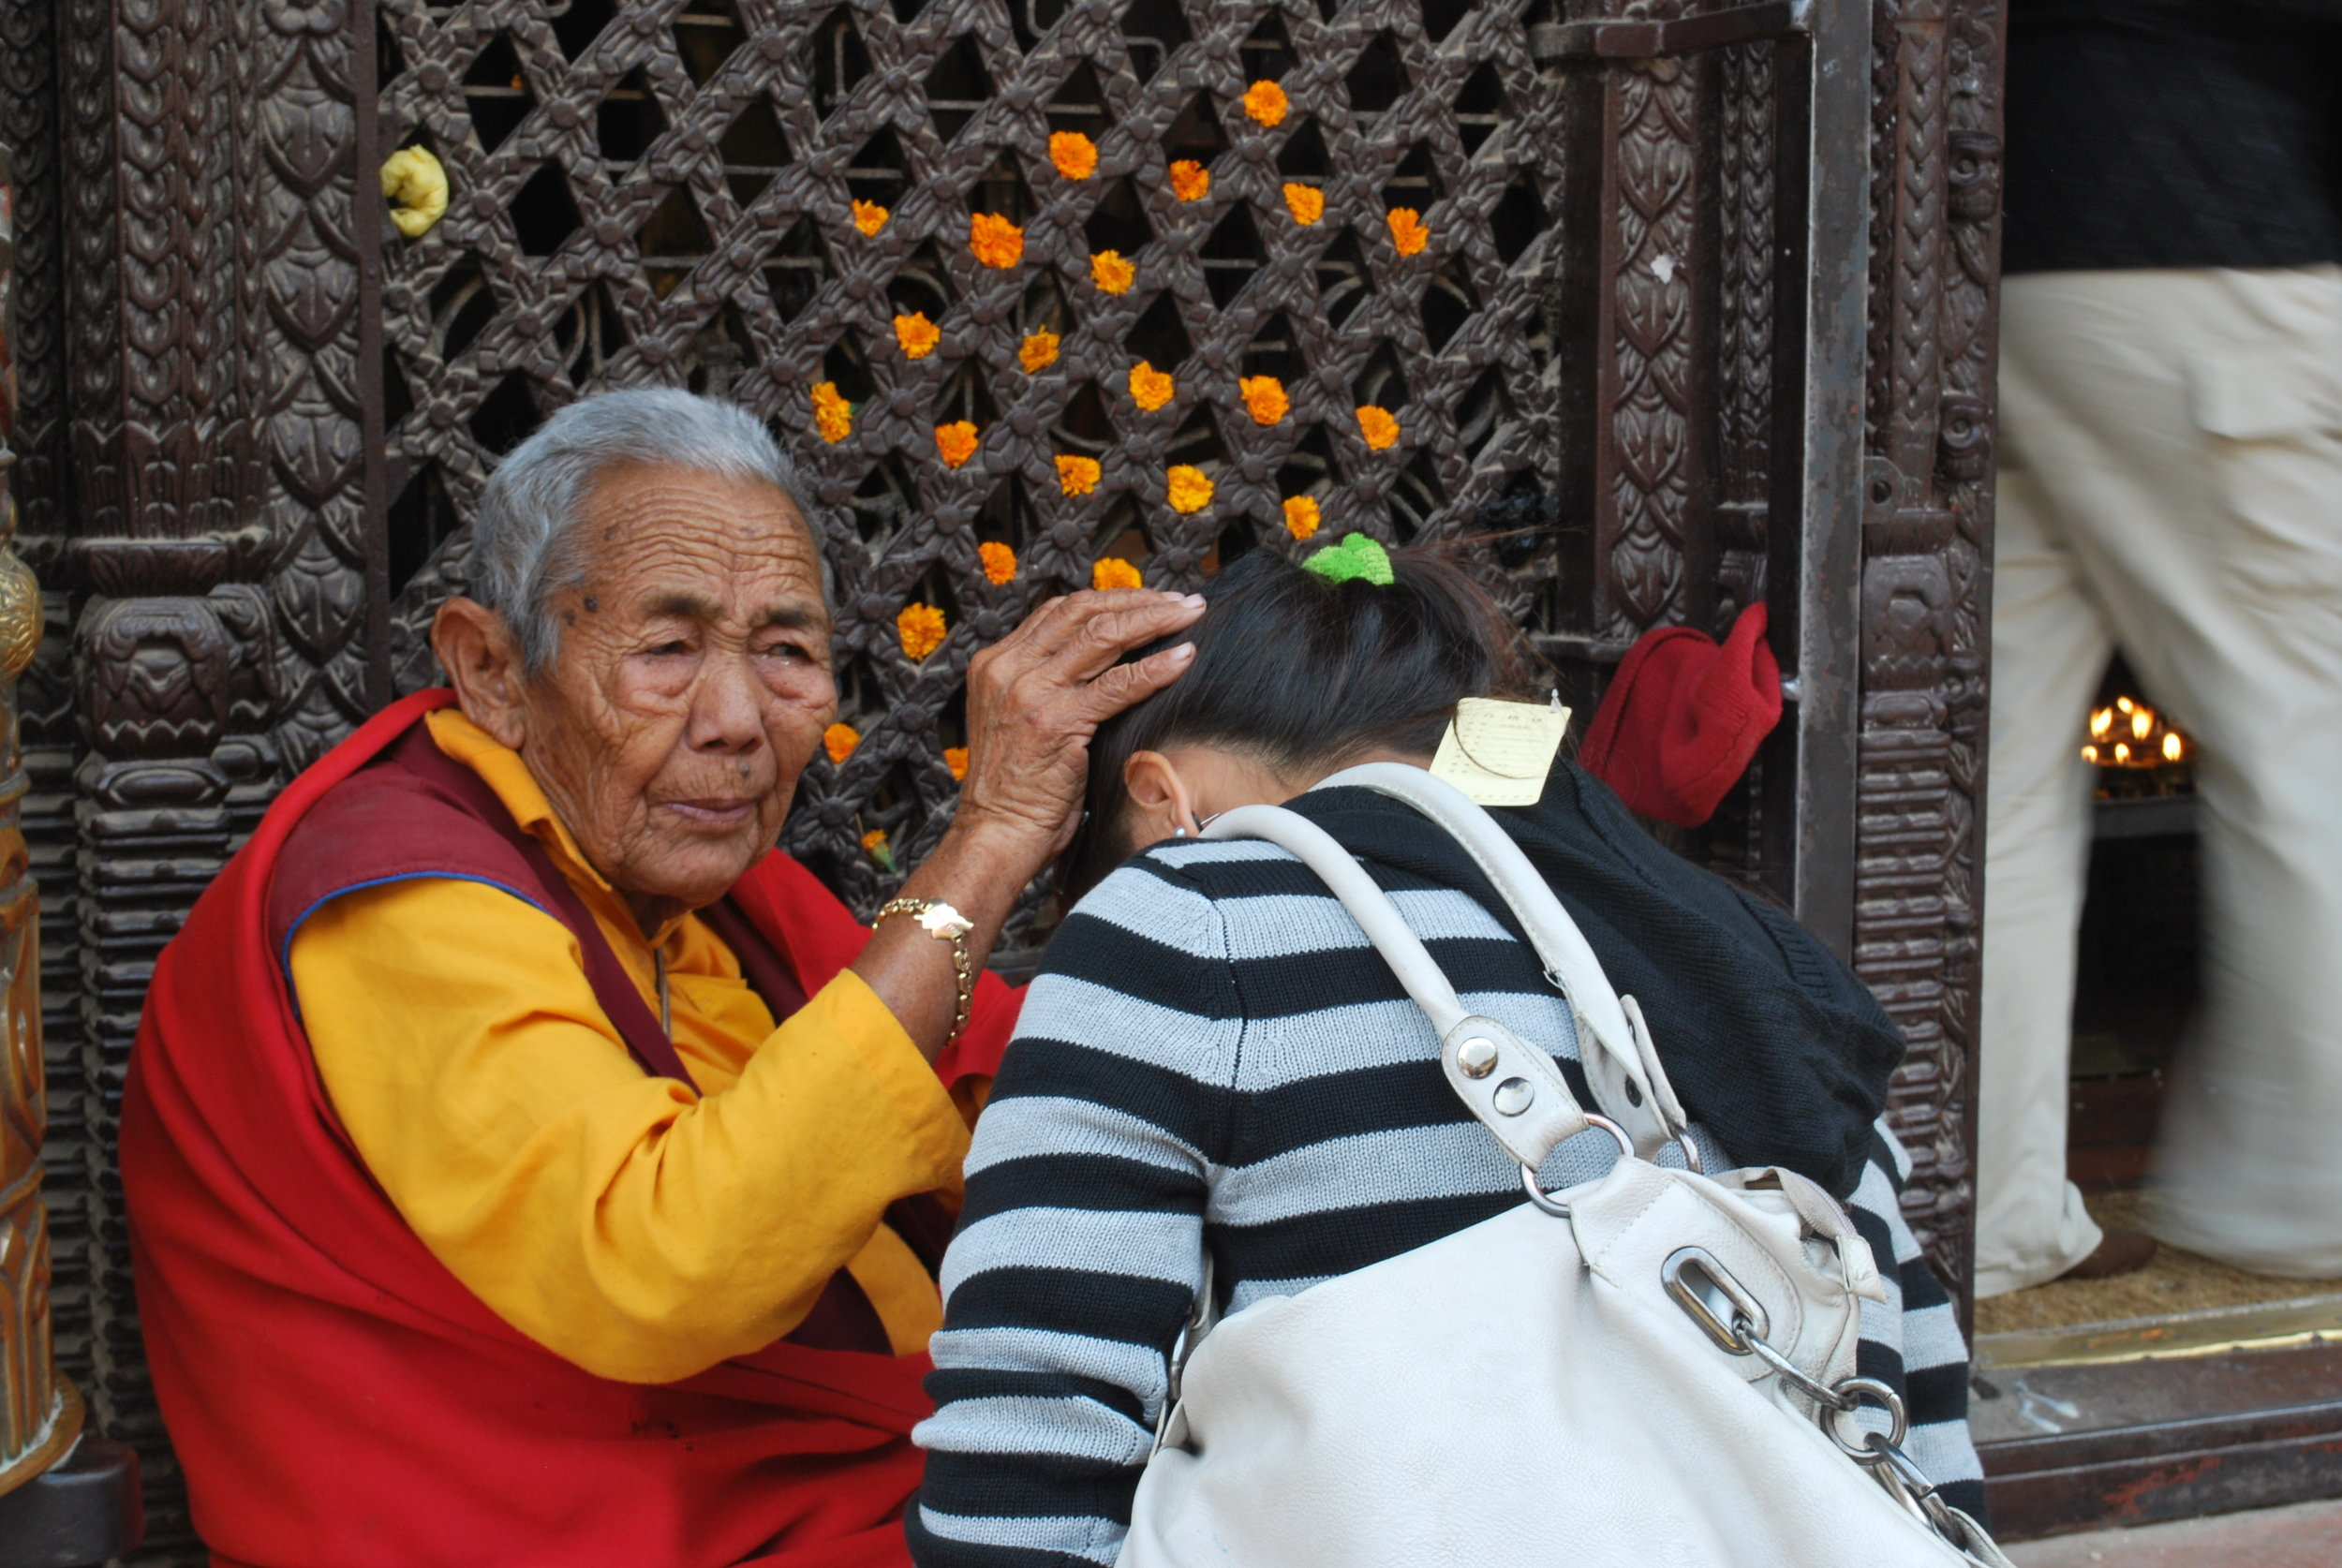 Elder blessing at Bodenath   Photo by Amy Hahn